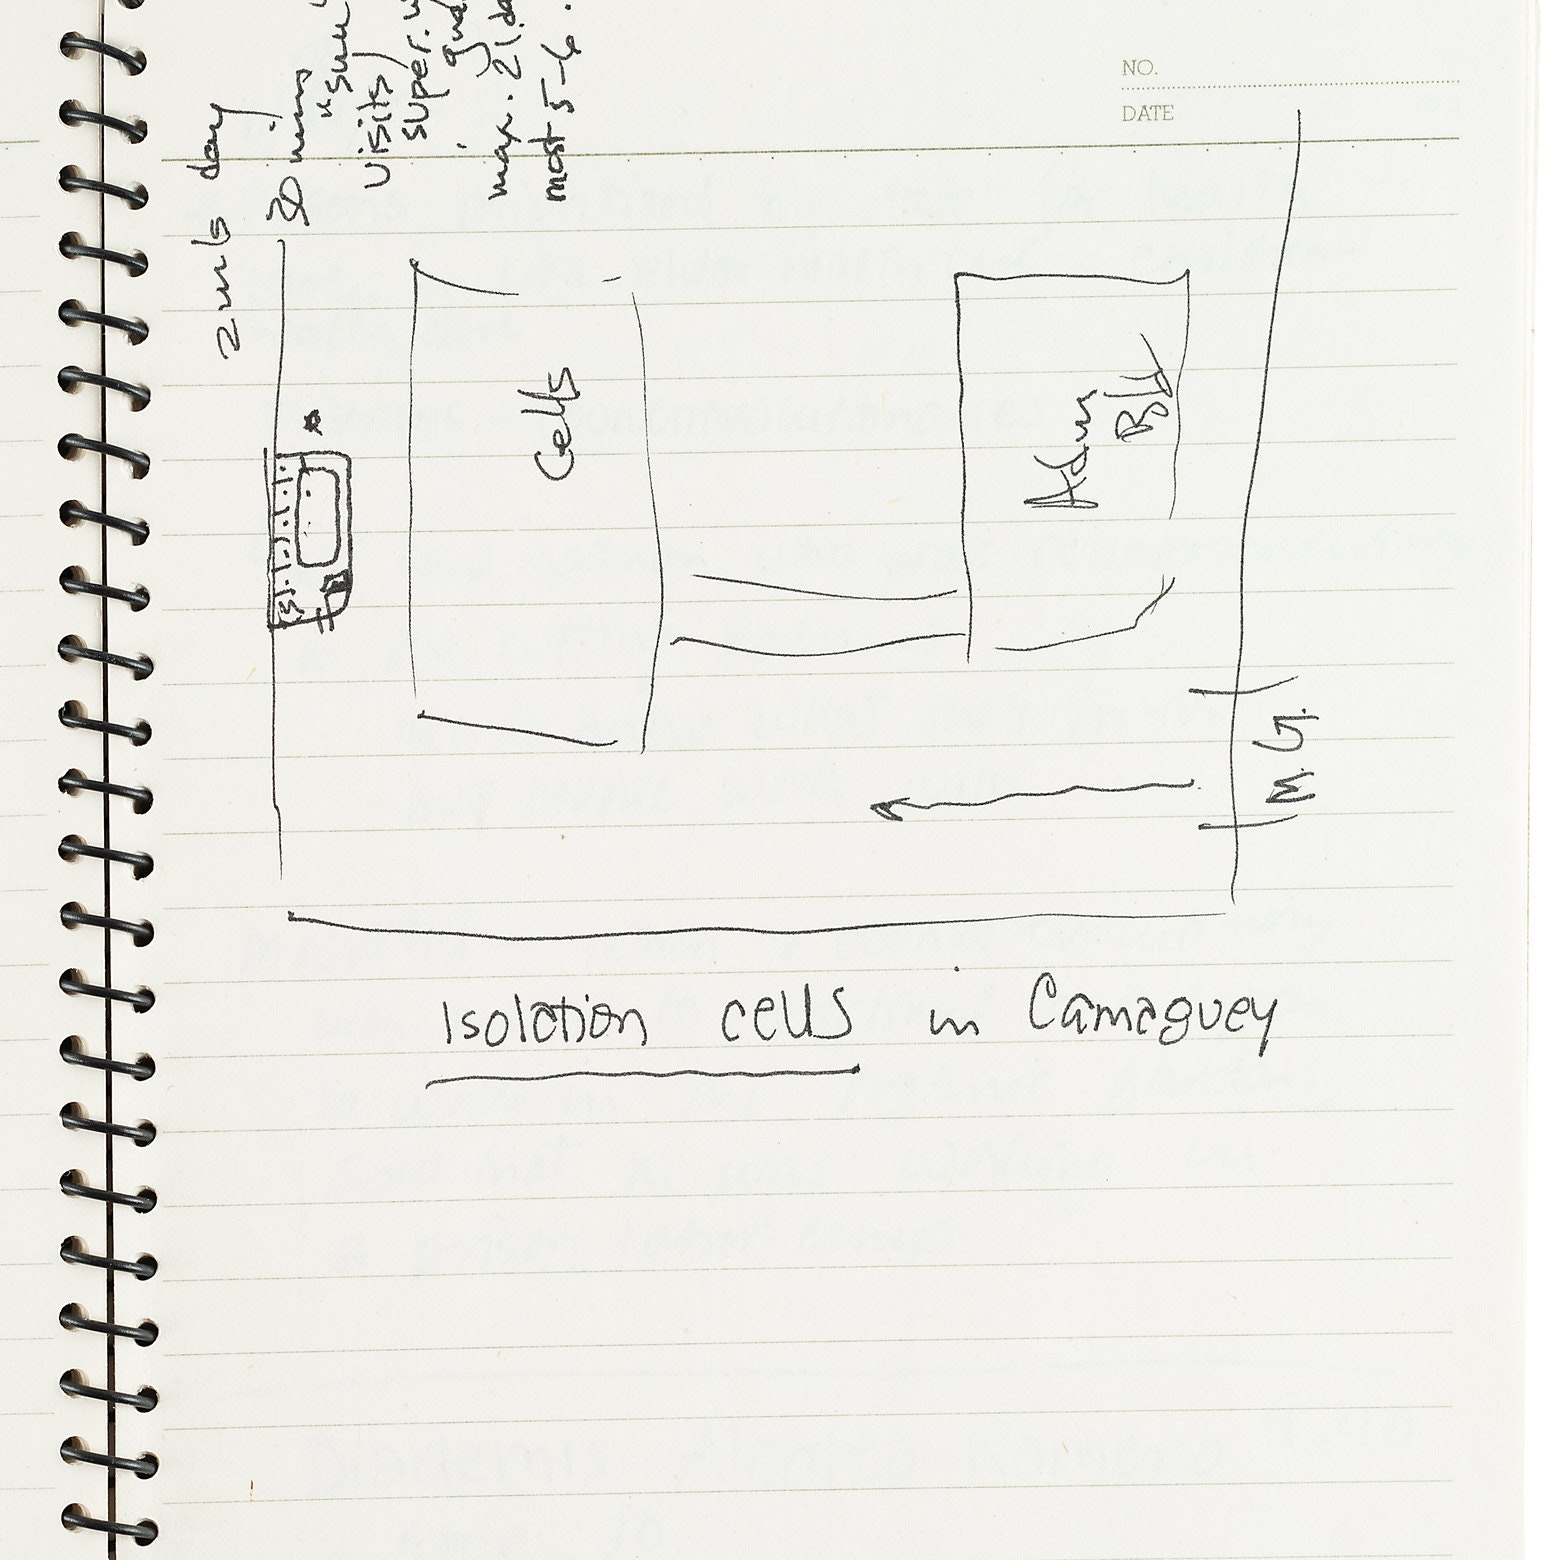 Sketch of women's prison cell on white lined paper.